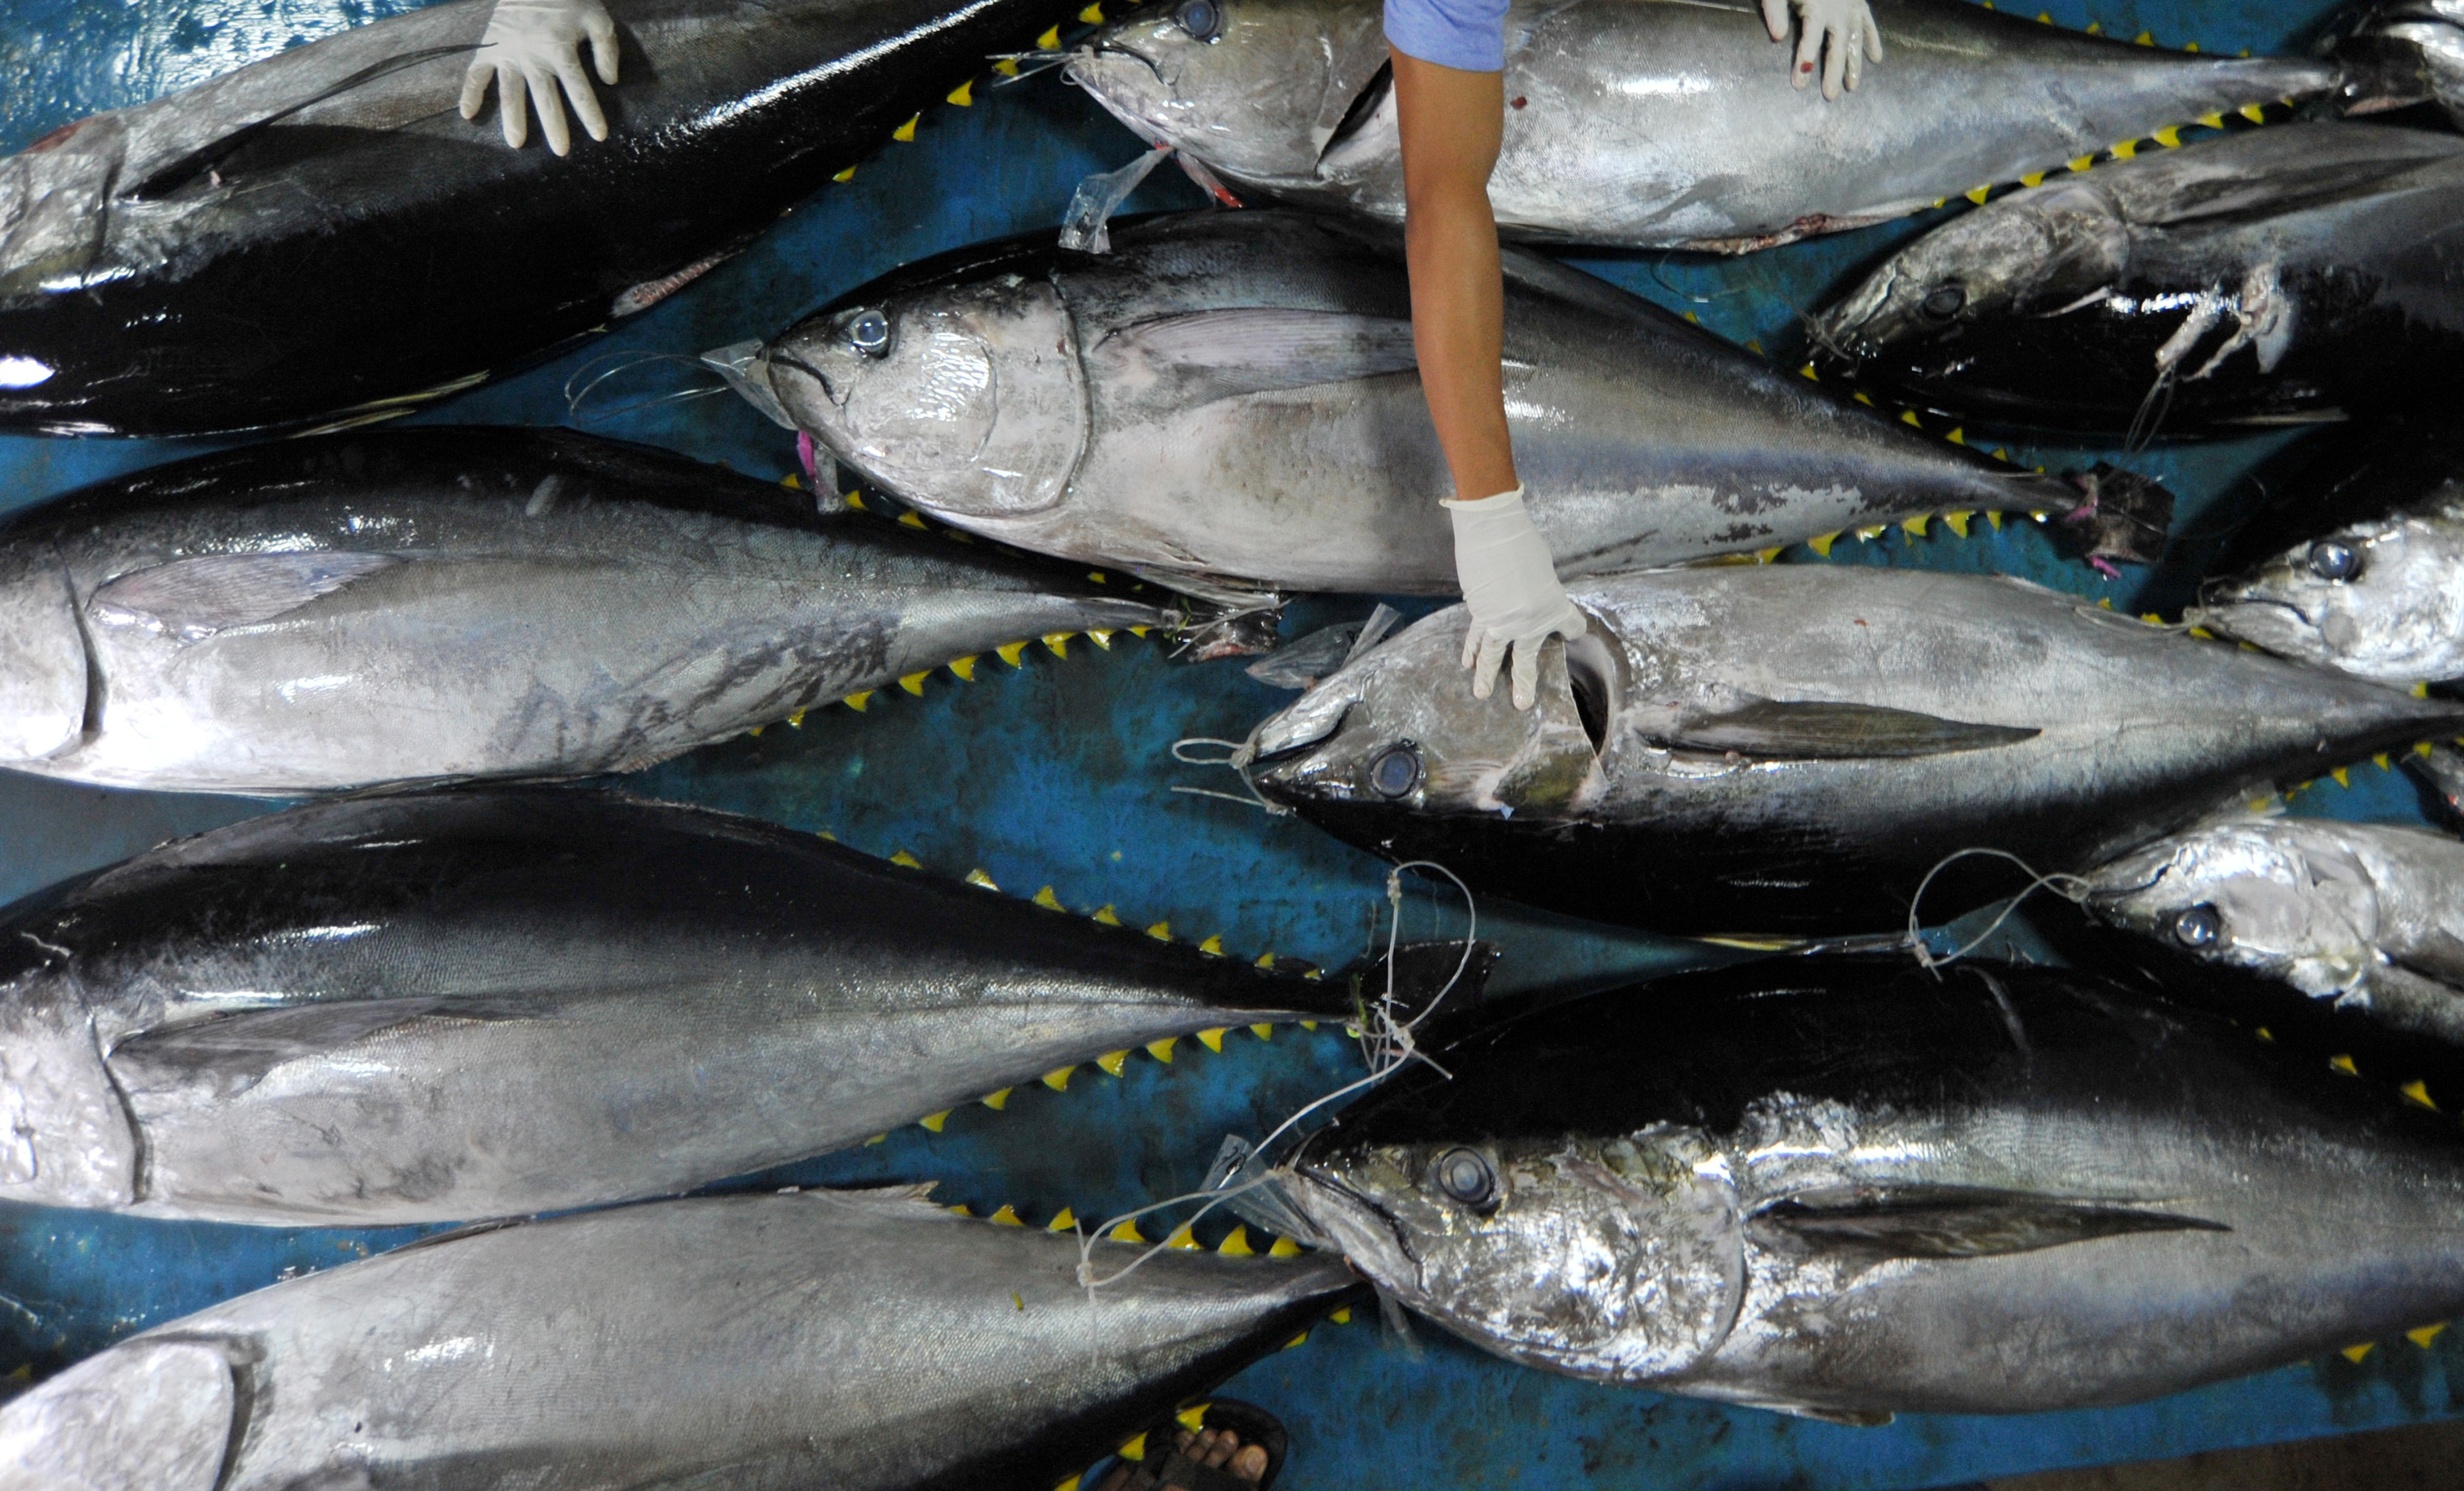 Officials from the Fish Quarantine and Quality Control agency examine fresh tuna at Saudera Bungus fishery port in Padang, West Sumatra, Indonesia, July 23, 2018 in this photo taken by Antara Foto.  Picture taken July 23, 2018.